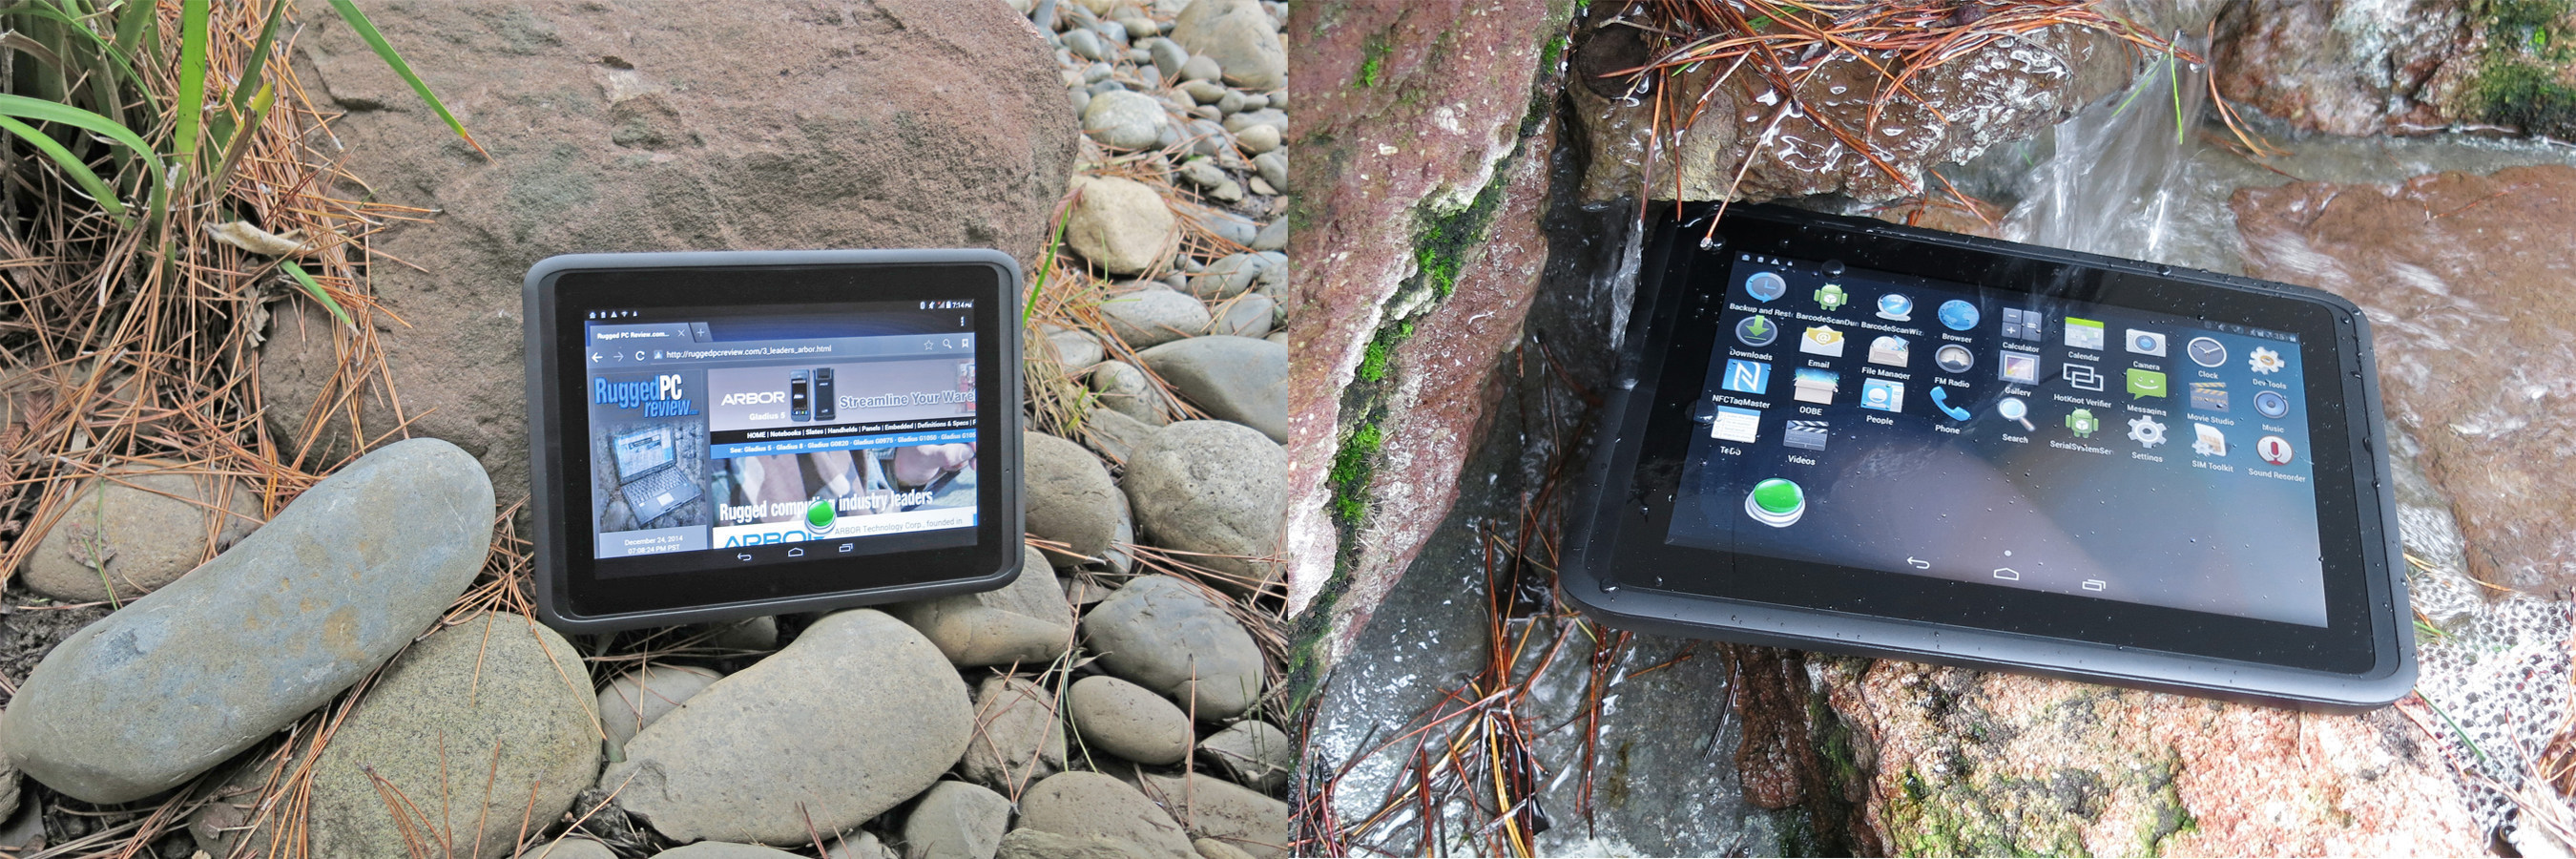 The Arbor Gladius 10 rugged Android tablet coming May 2015 has the advanced features, durability and ...